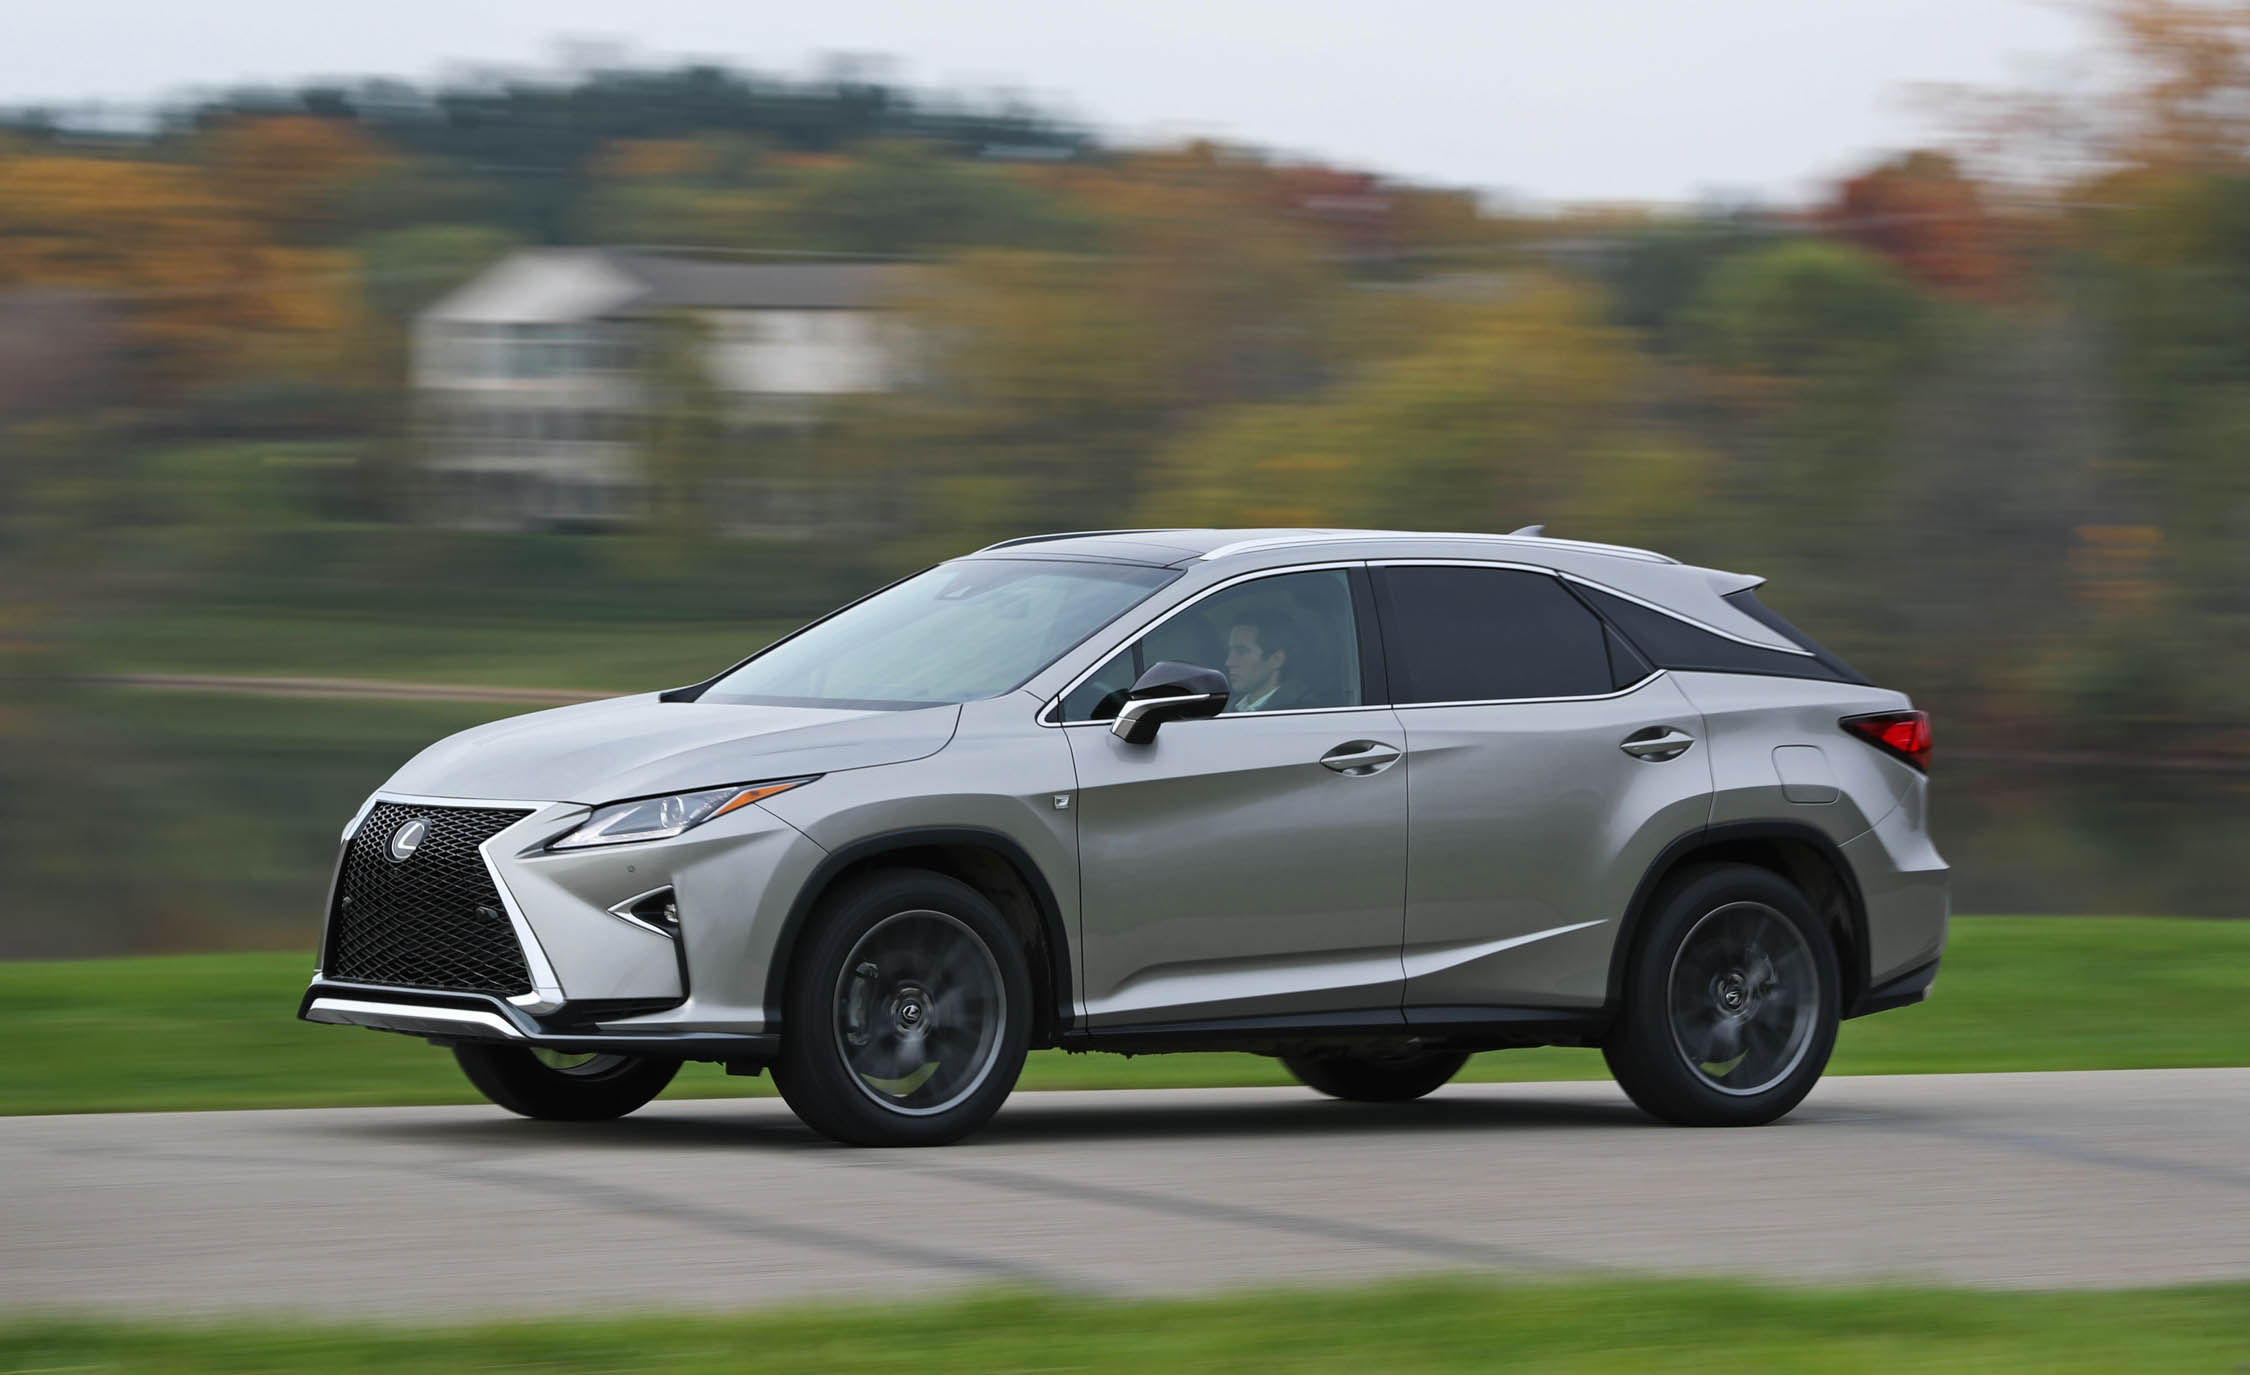 2017 Lexus RX350 F Sport (View 33 of 35)